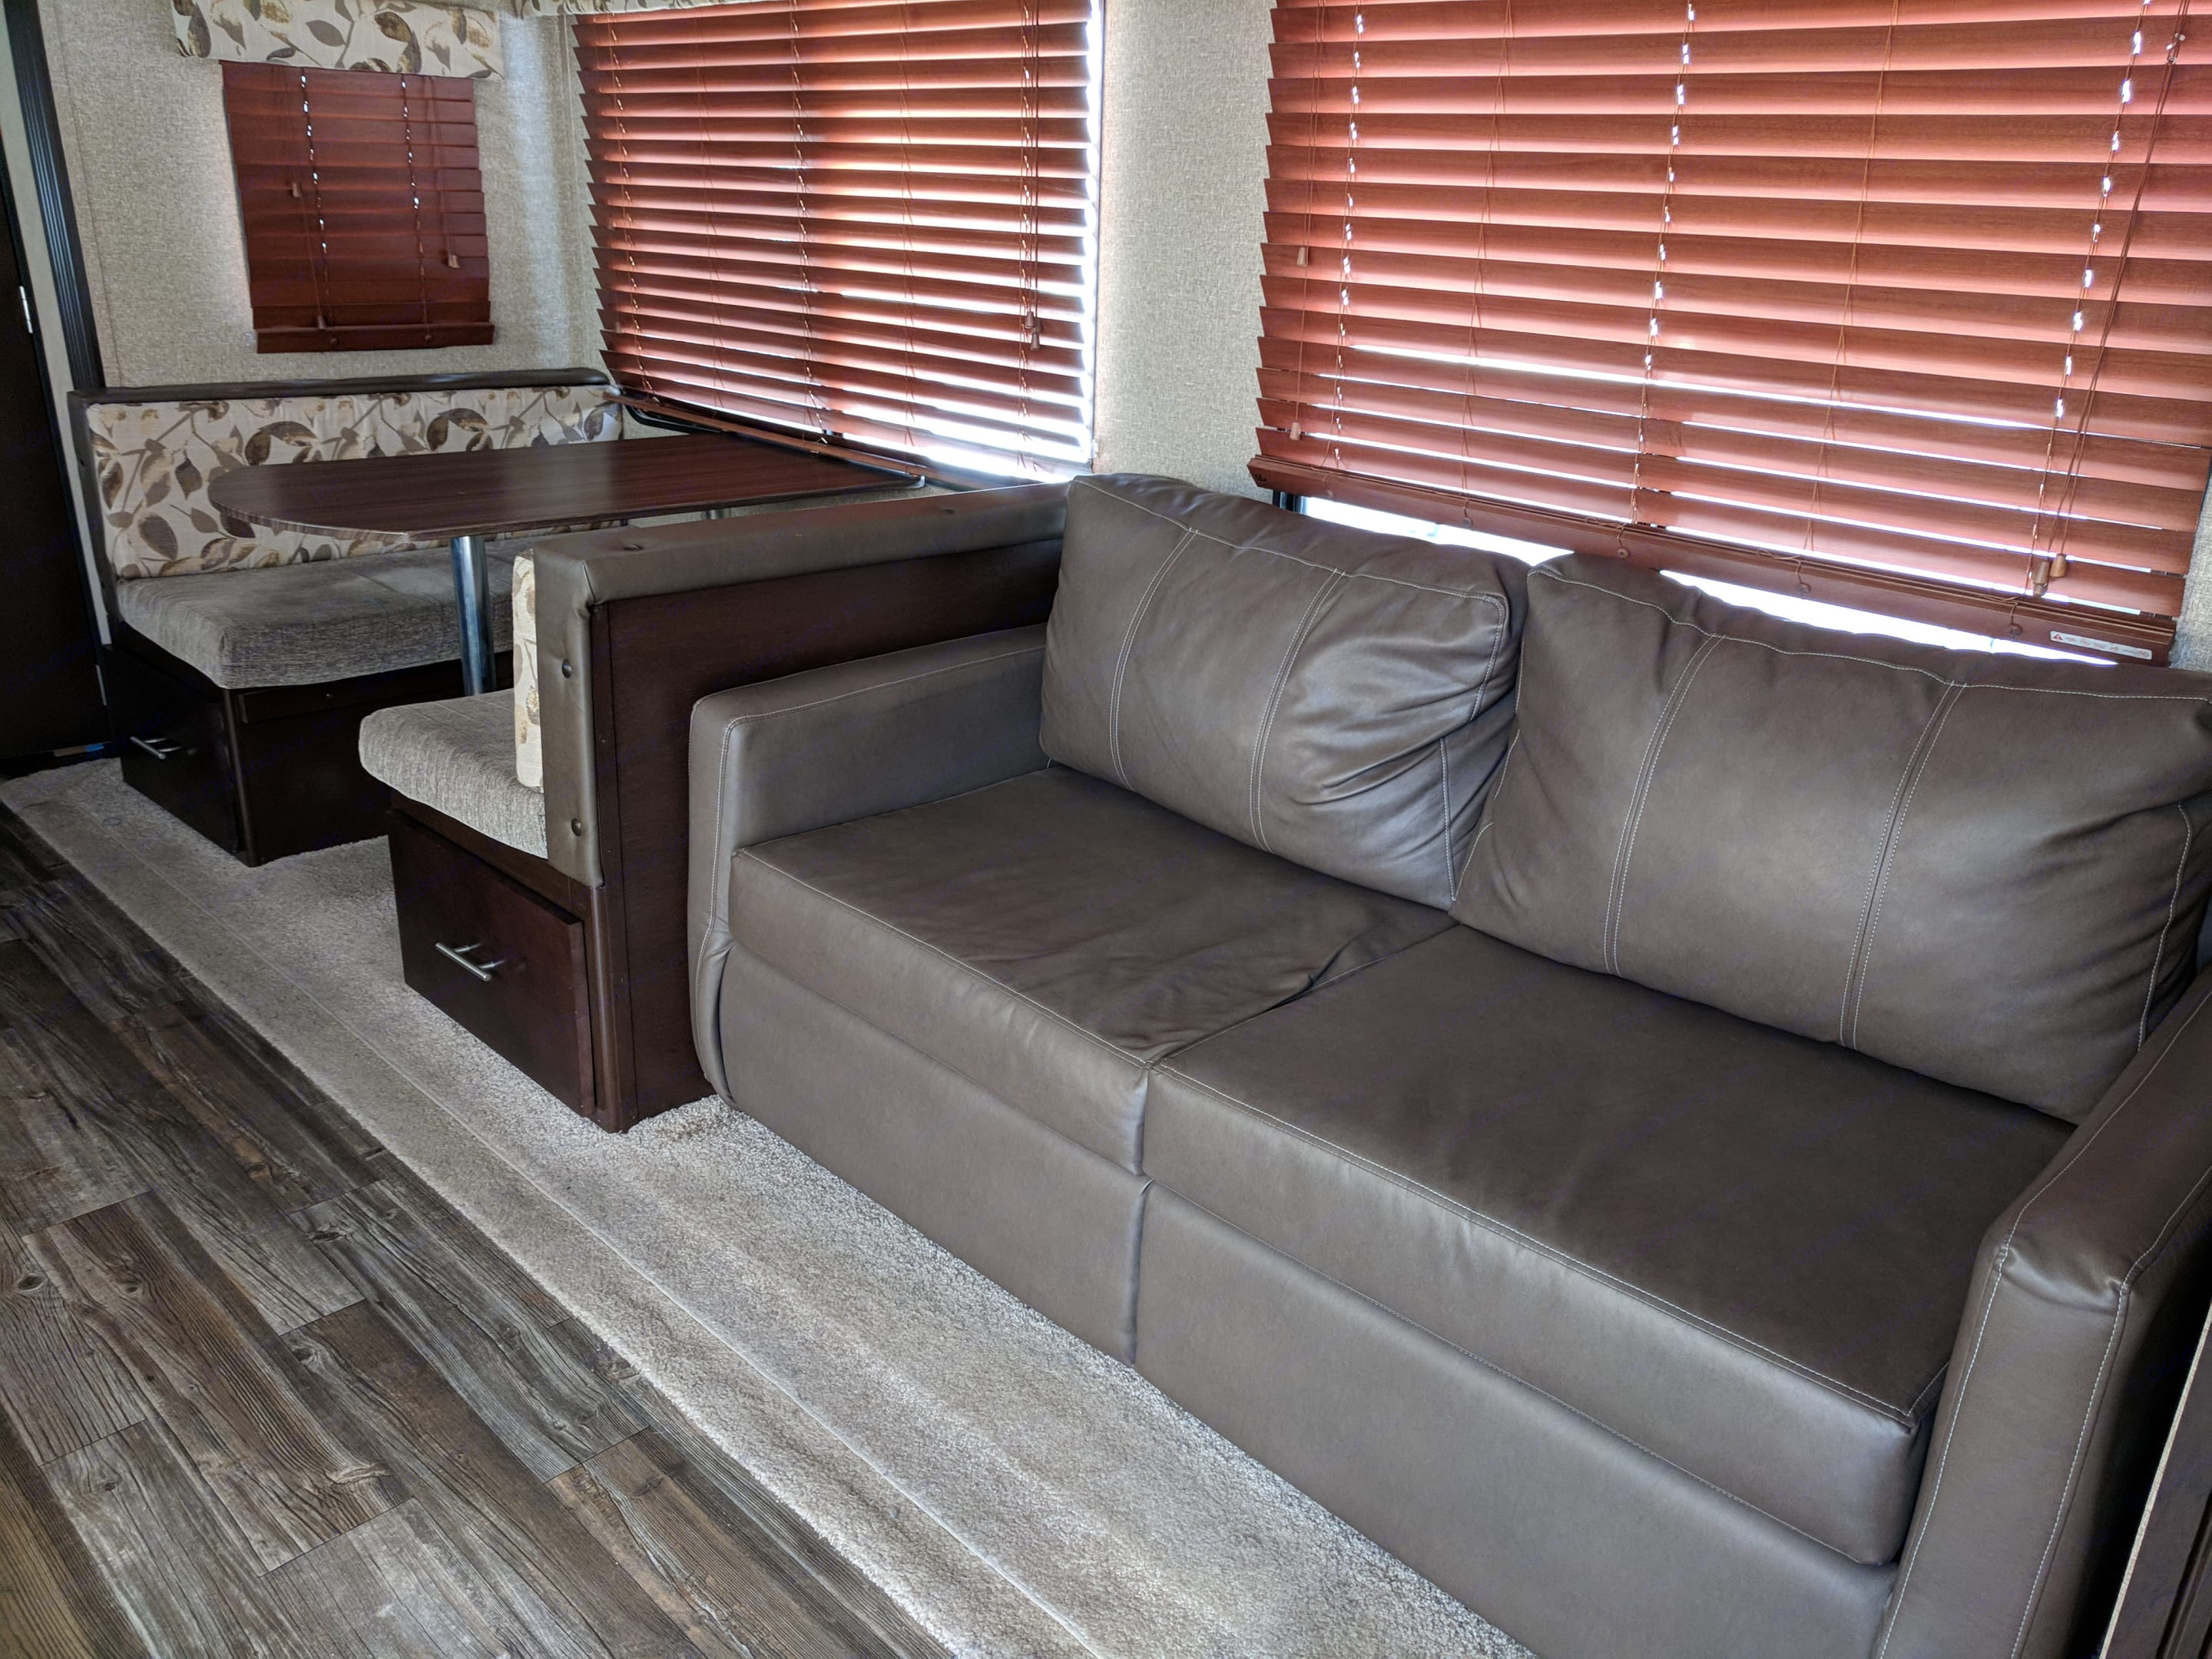 Dinette transforms to bed and Pull out sofa pulls out to full bed. Forest River Cherokee 2016